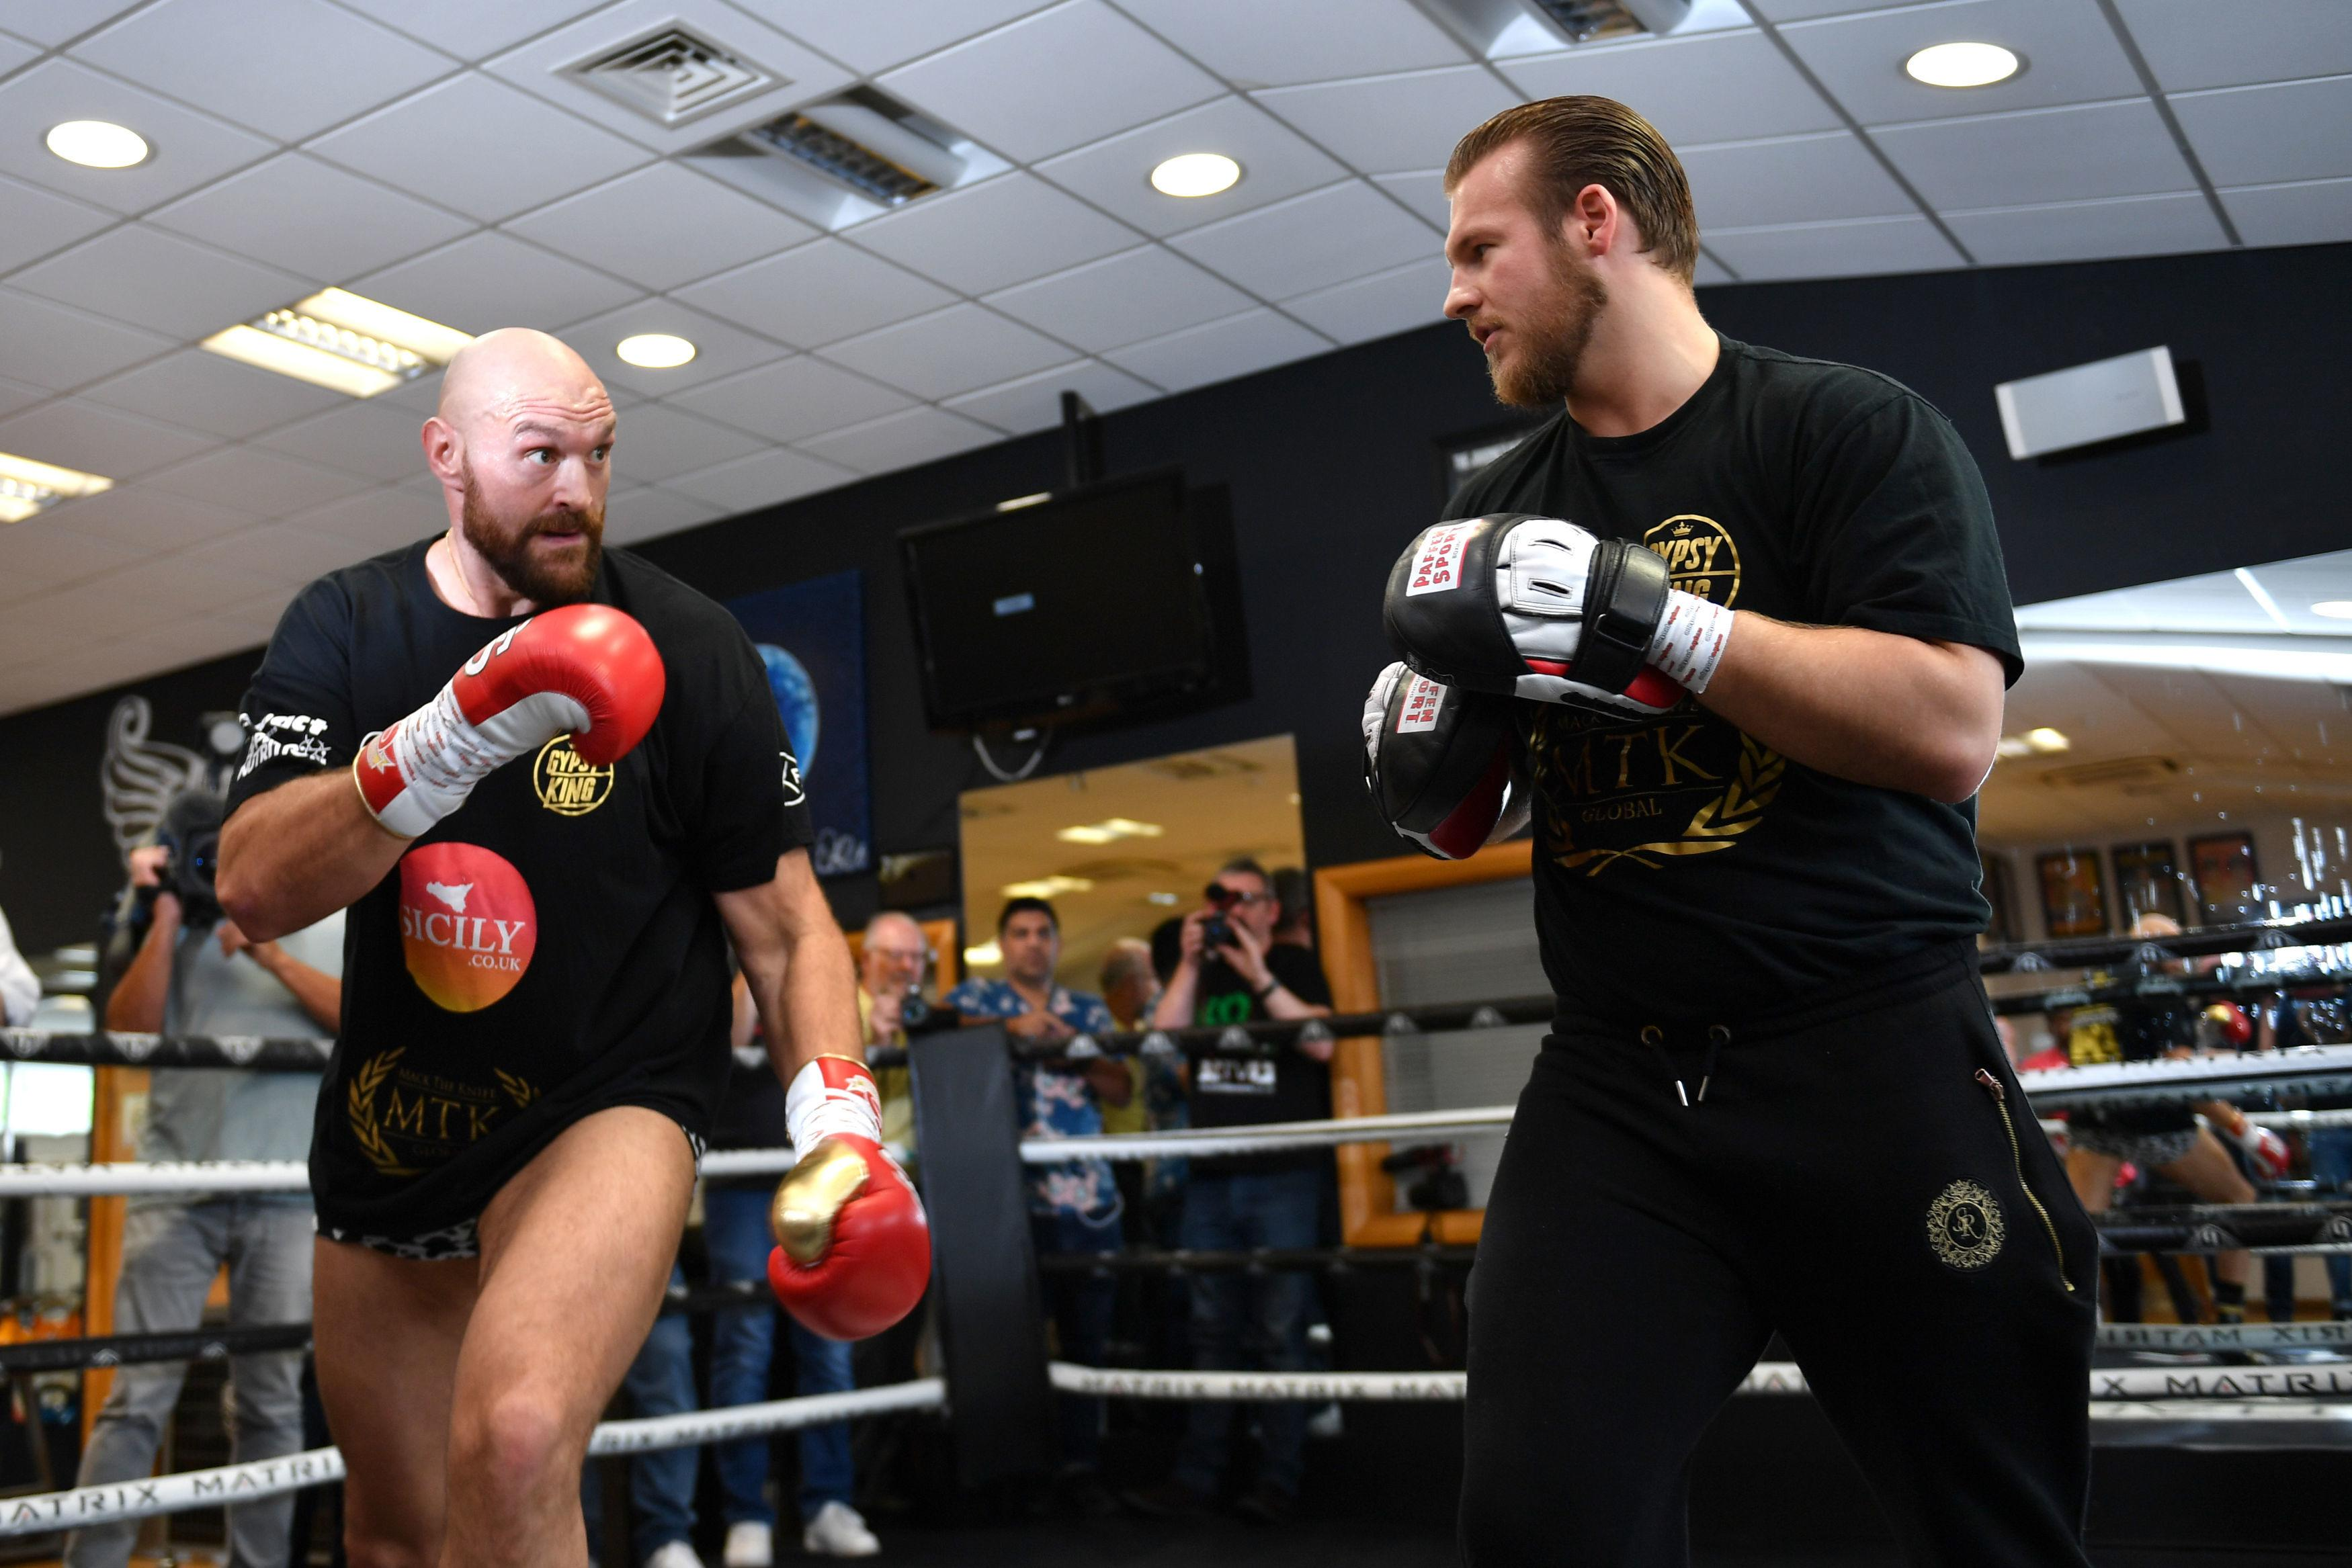 Tyson Fury is training for his second cemeback fight on August 18 - but he is already planning for a crack at Deontay Wilder's WBC belt